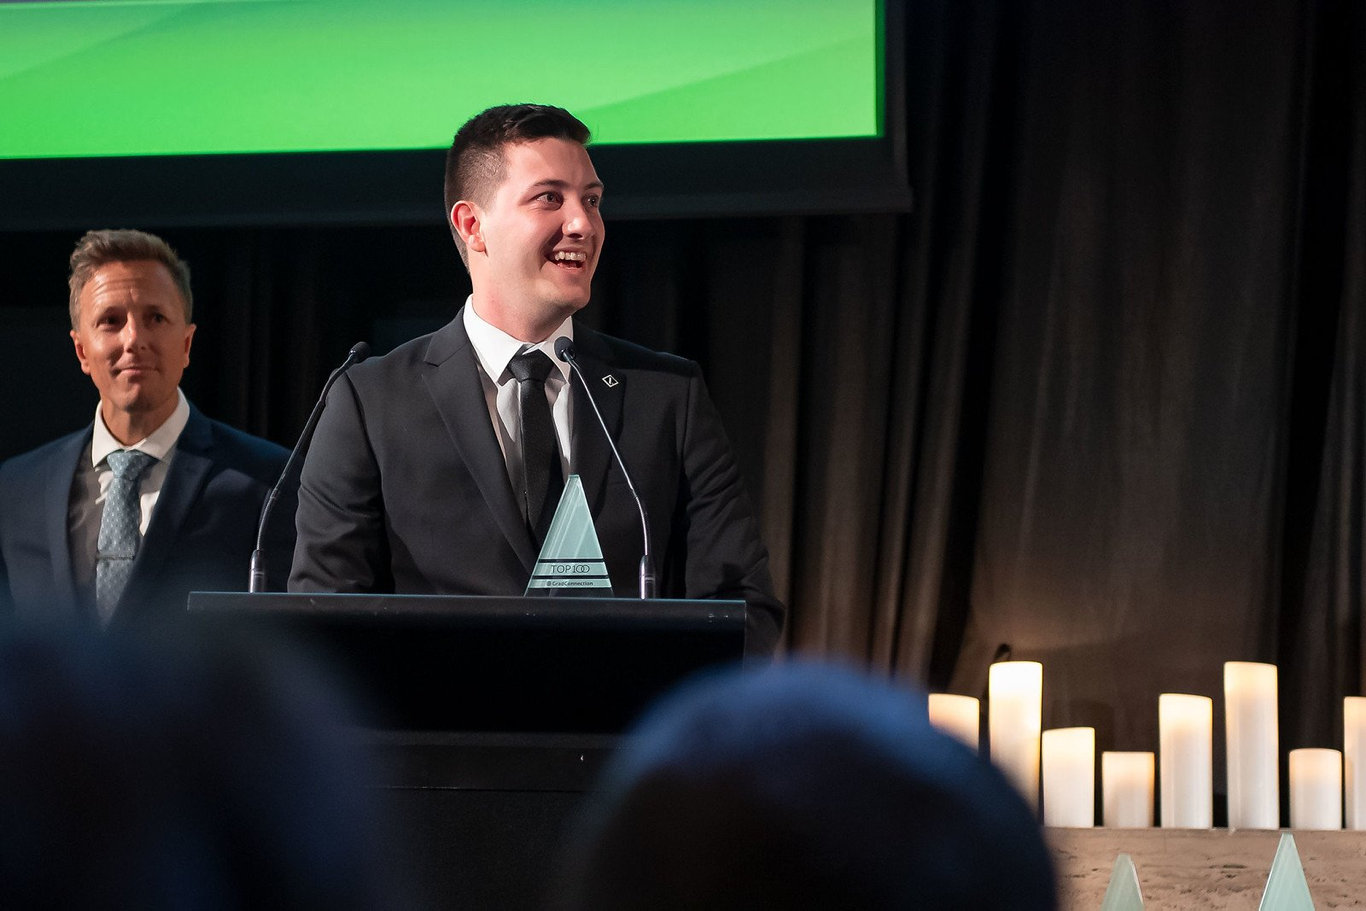 Mitchell Lawler received the award in Sydney.